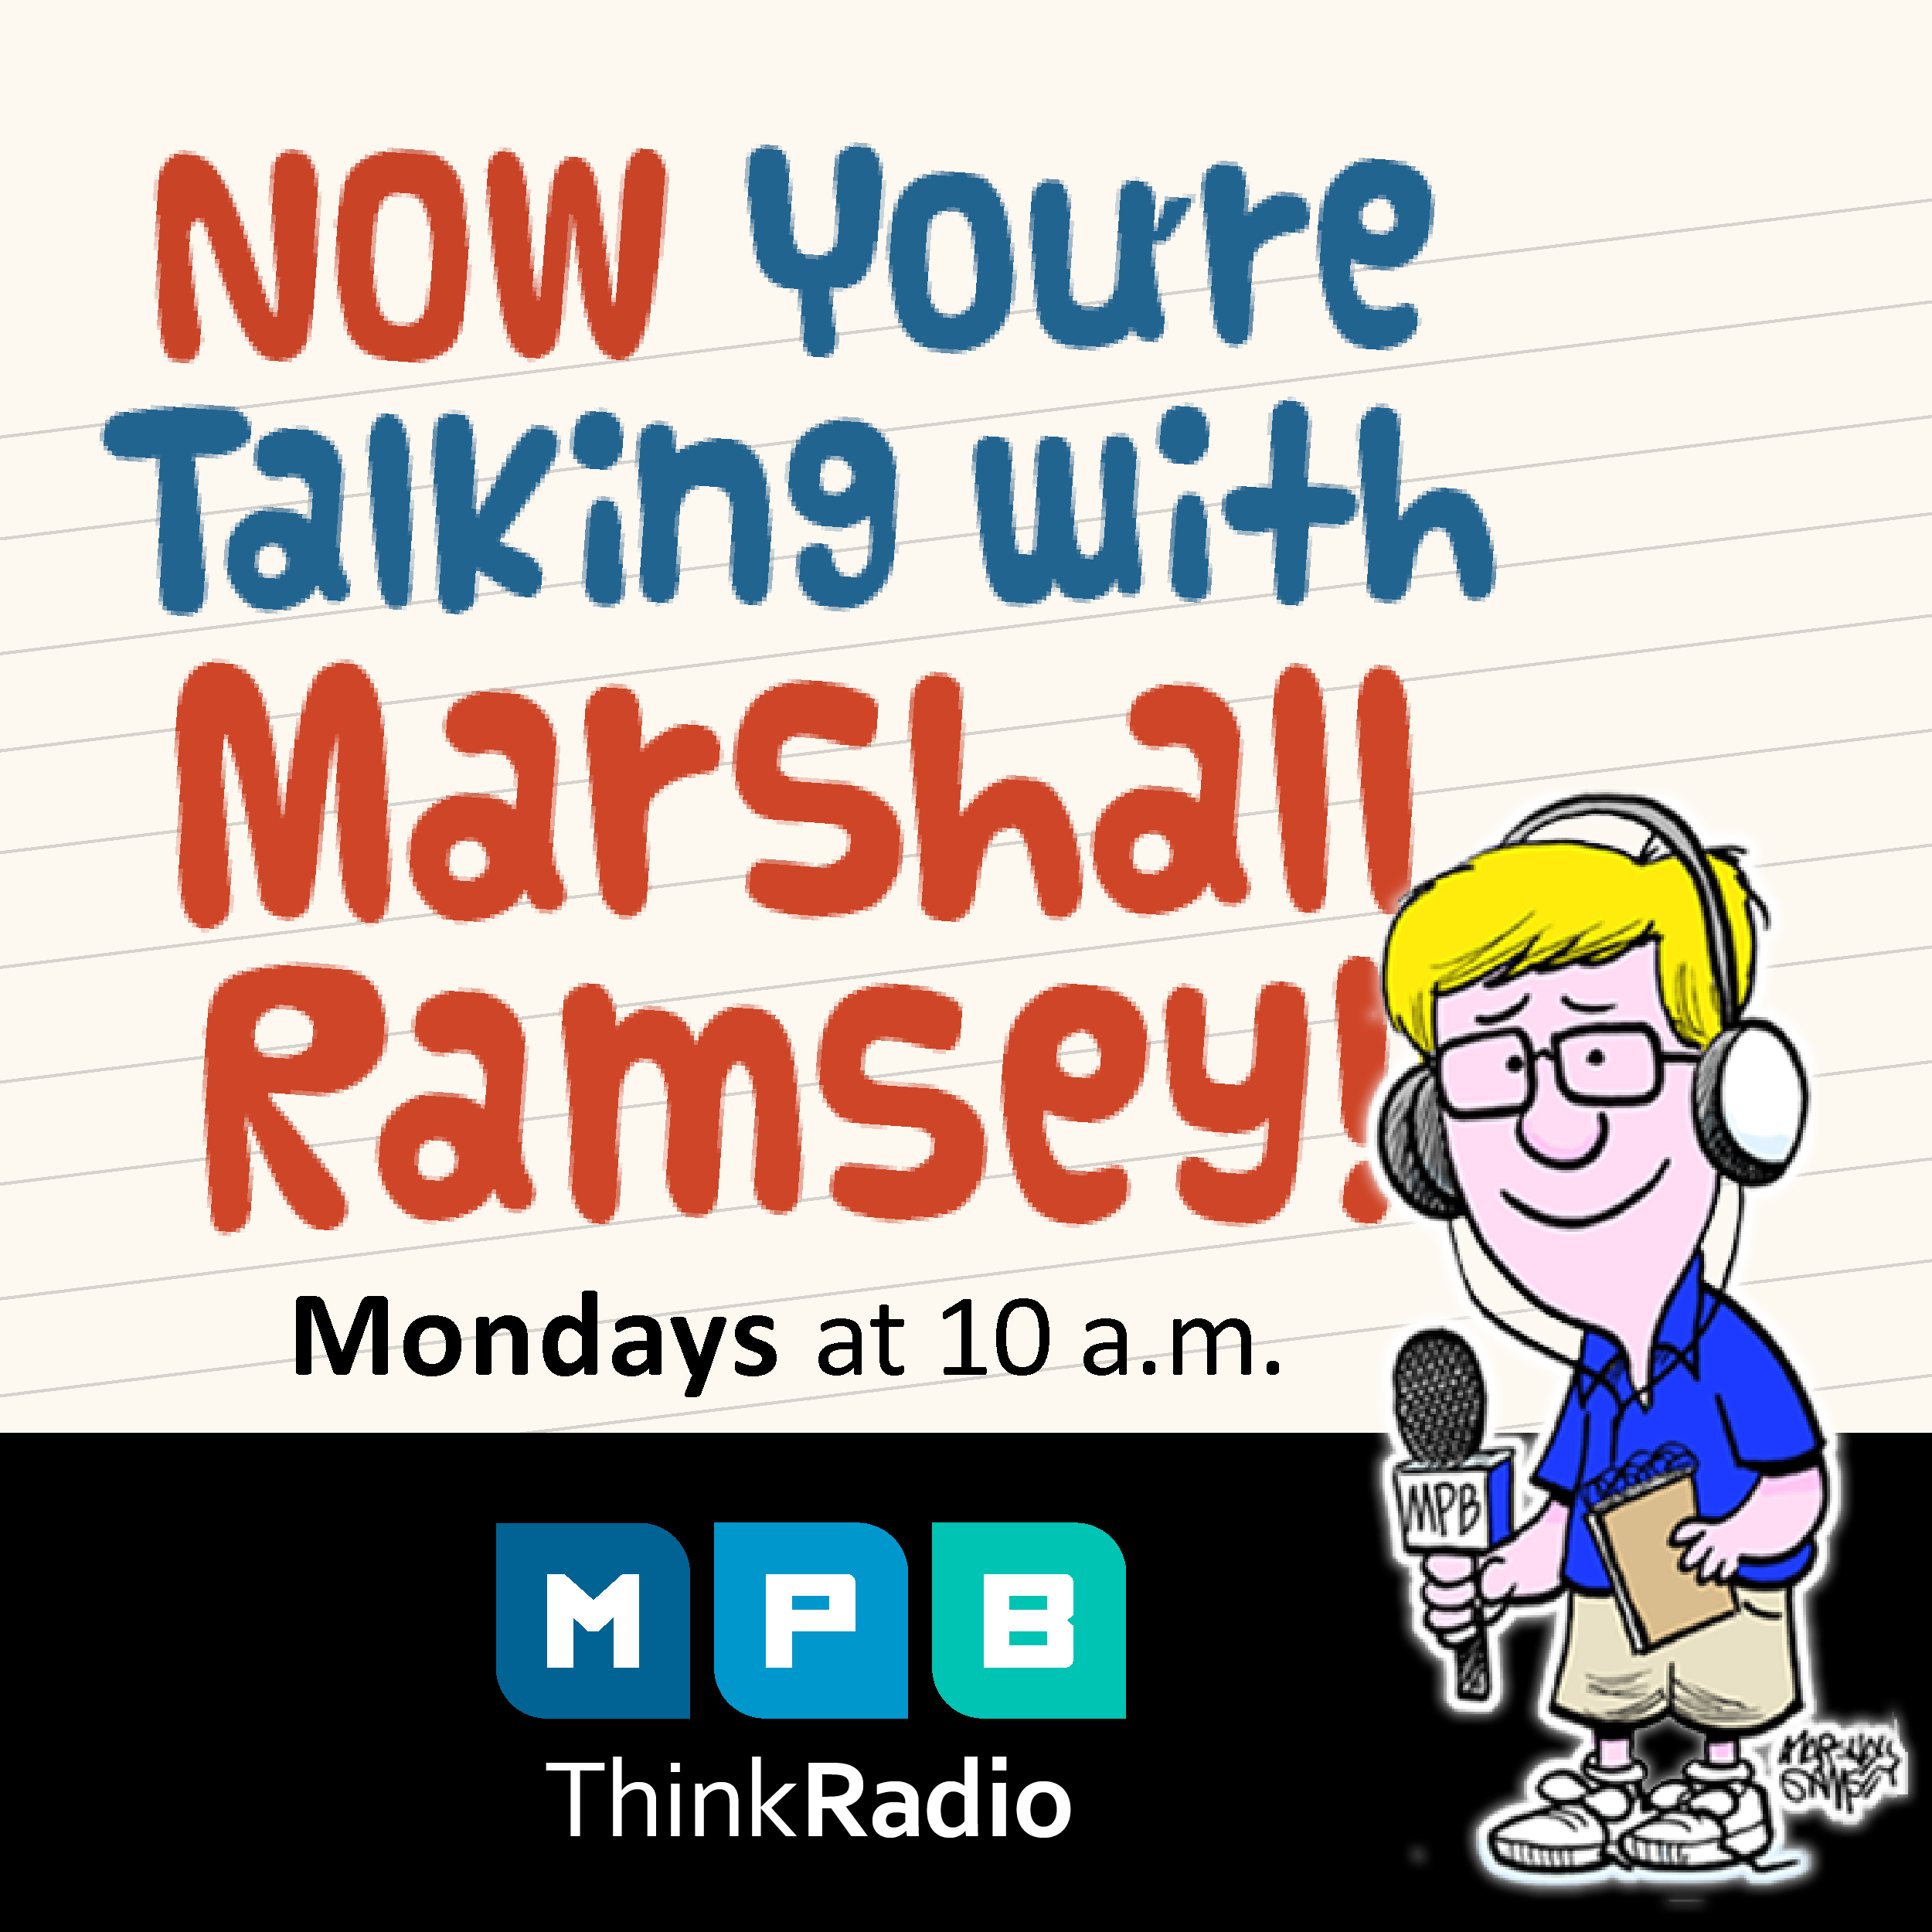 Listen to Now You're Talking every Monday at 9 a.m. on MPB Think Radio